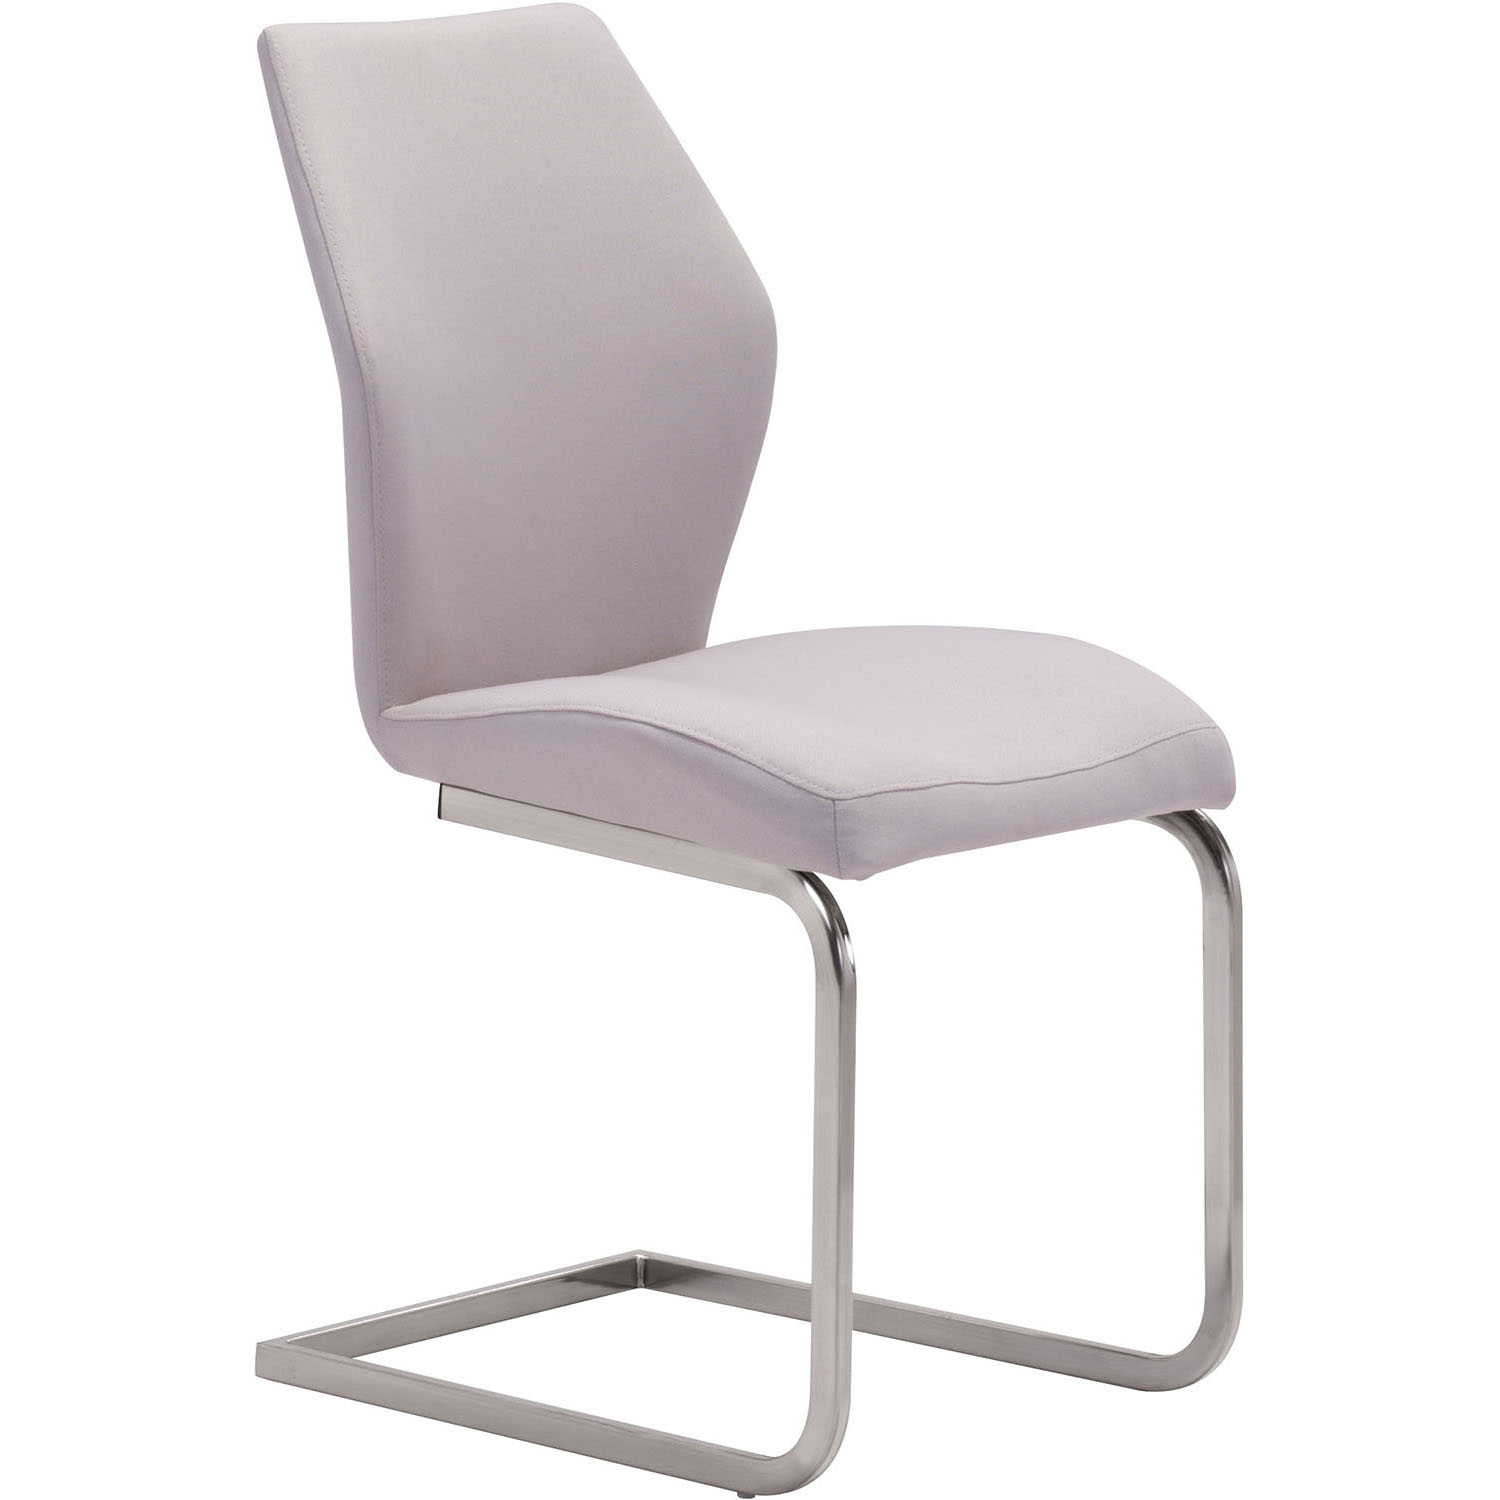 High-class Modern Rotary Dining Chairs  Product Photo